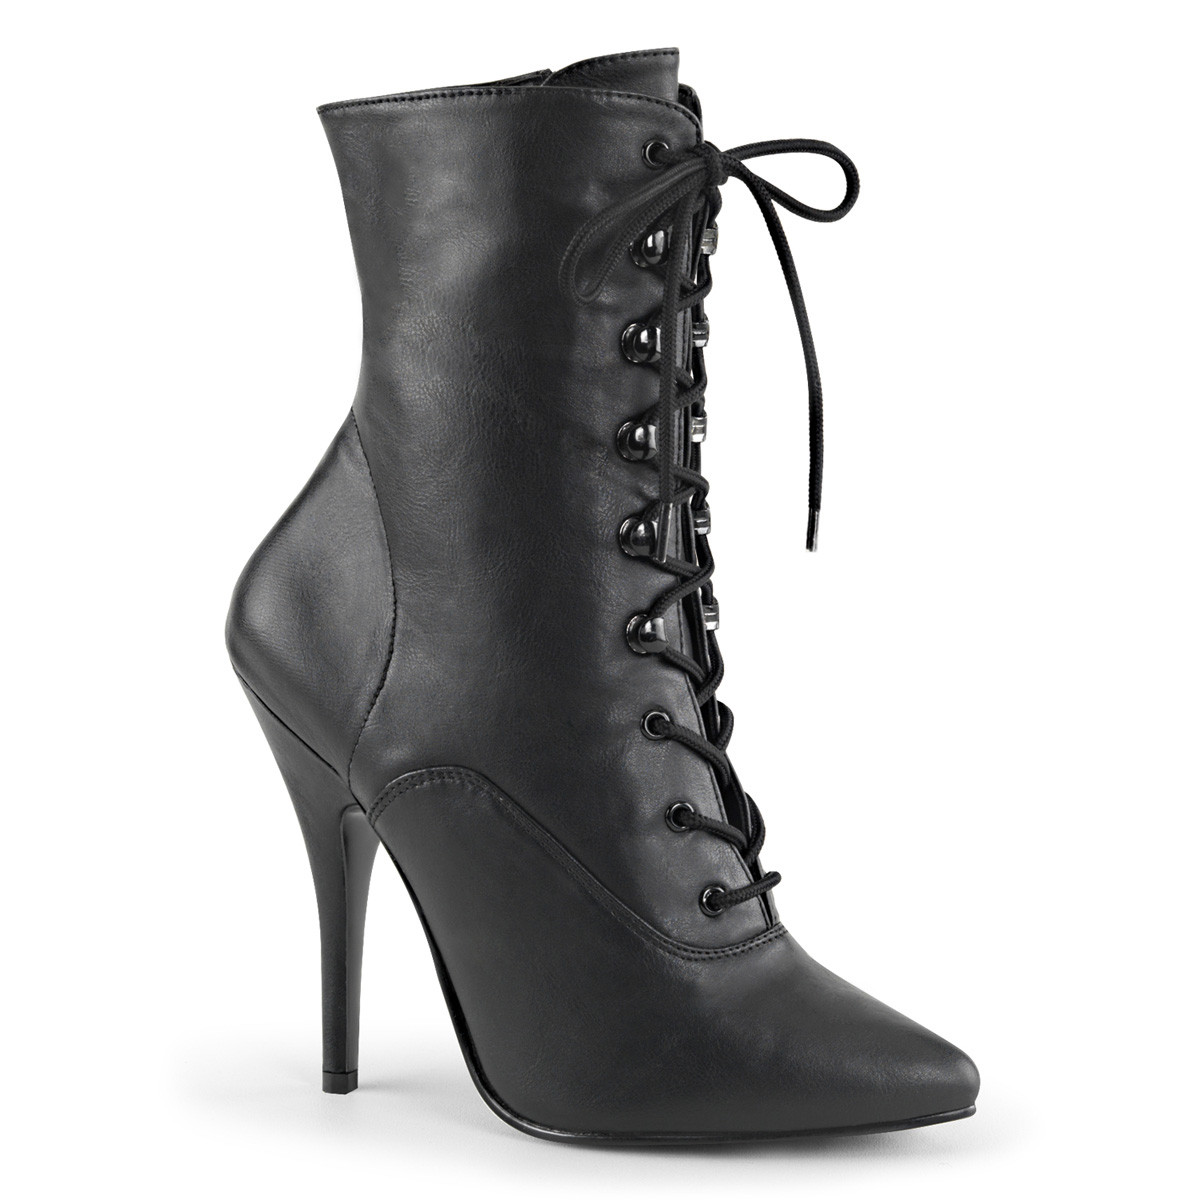 "5"" Black Lace-Up Faux Leather Ankle Boot*"